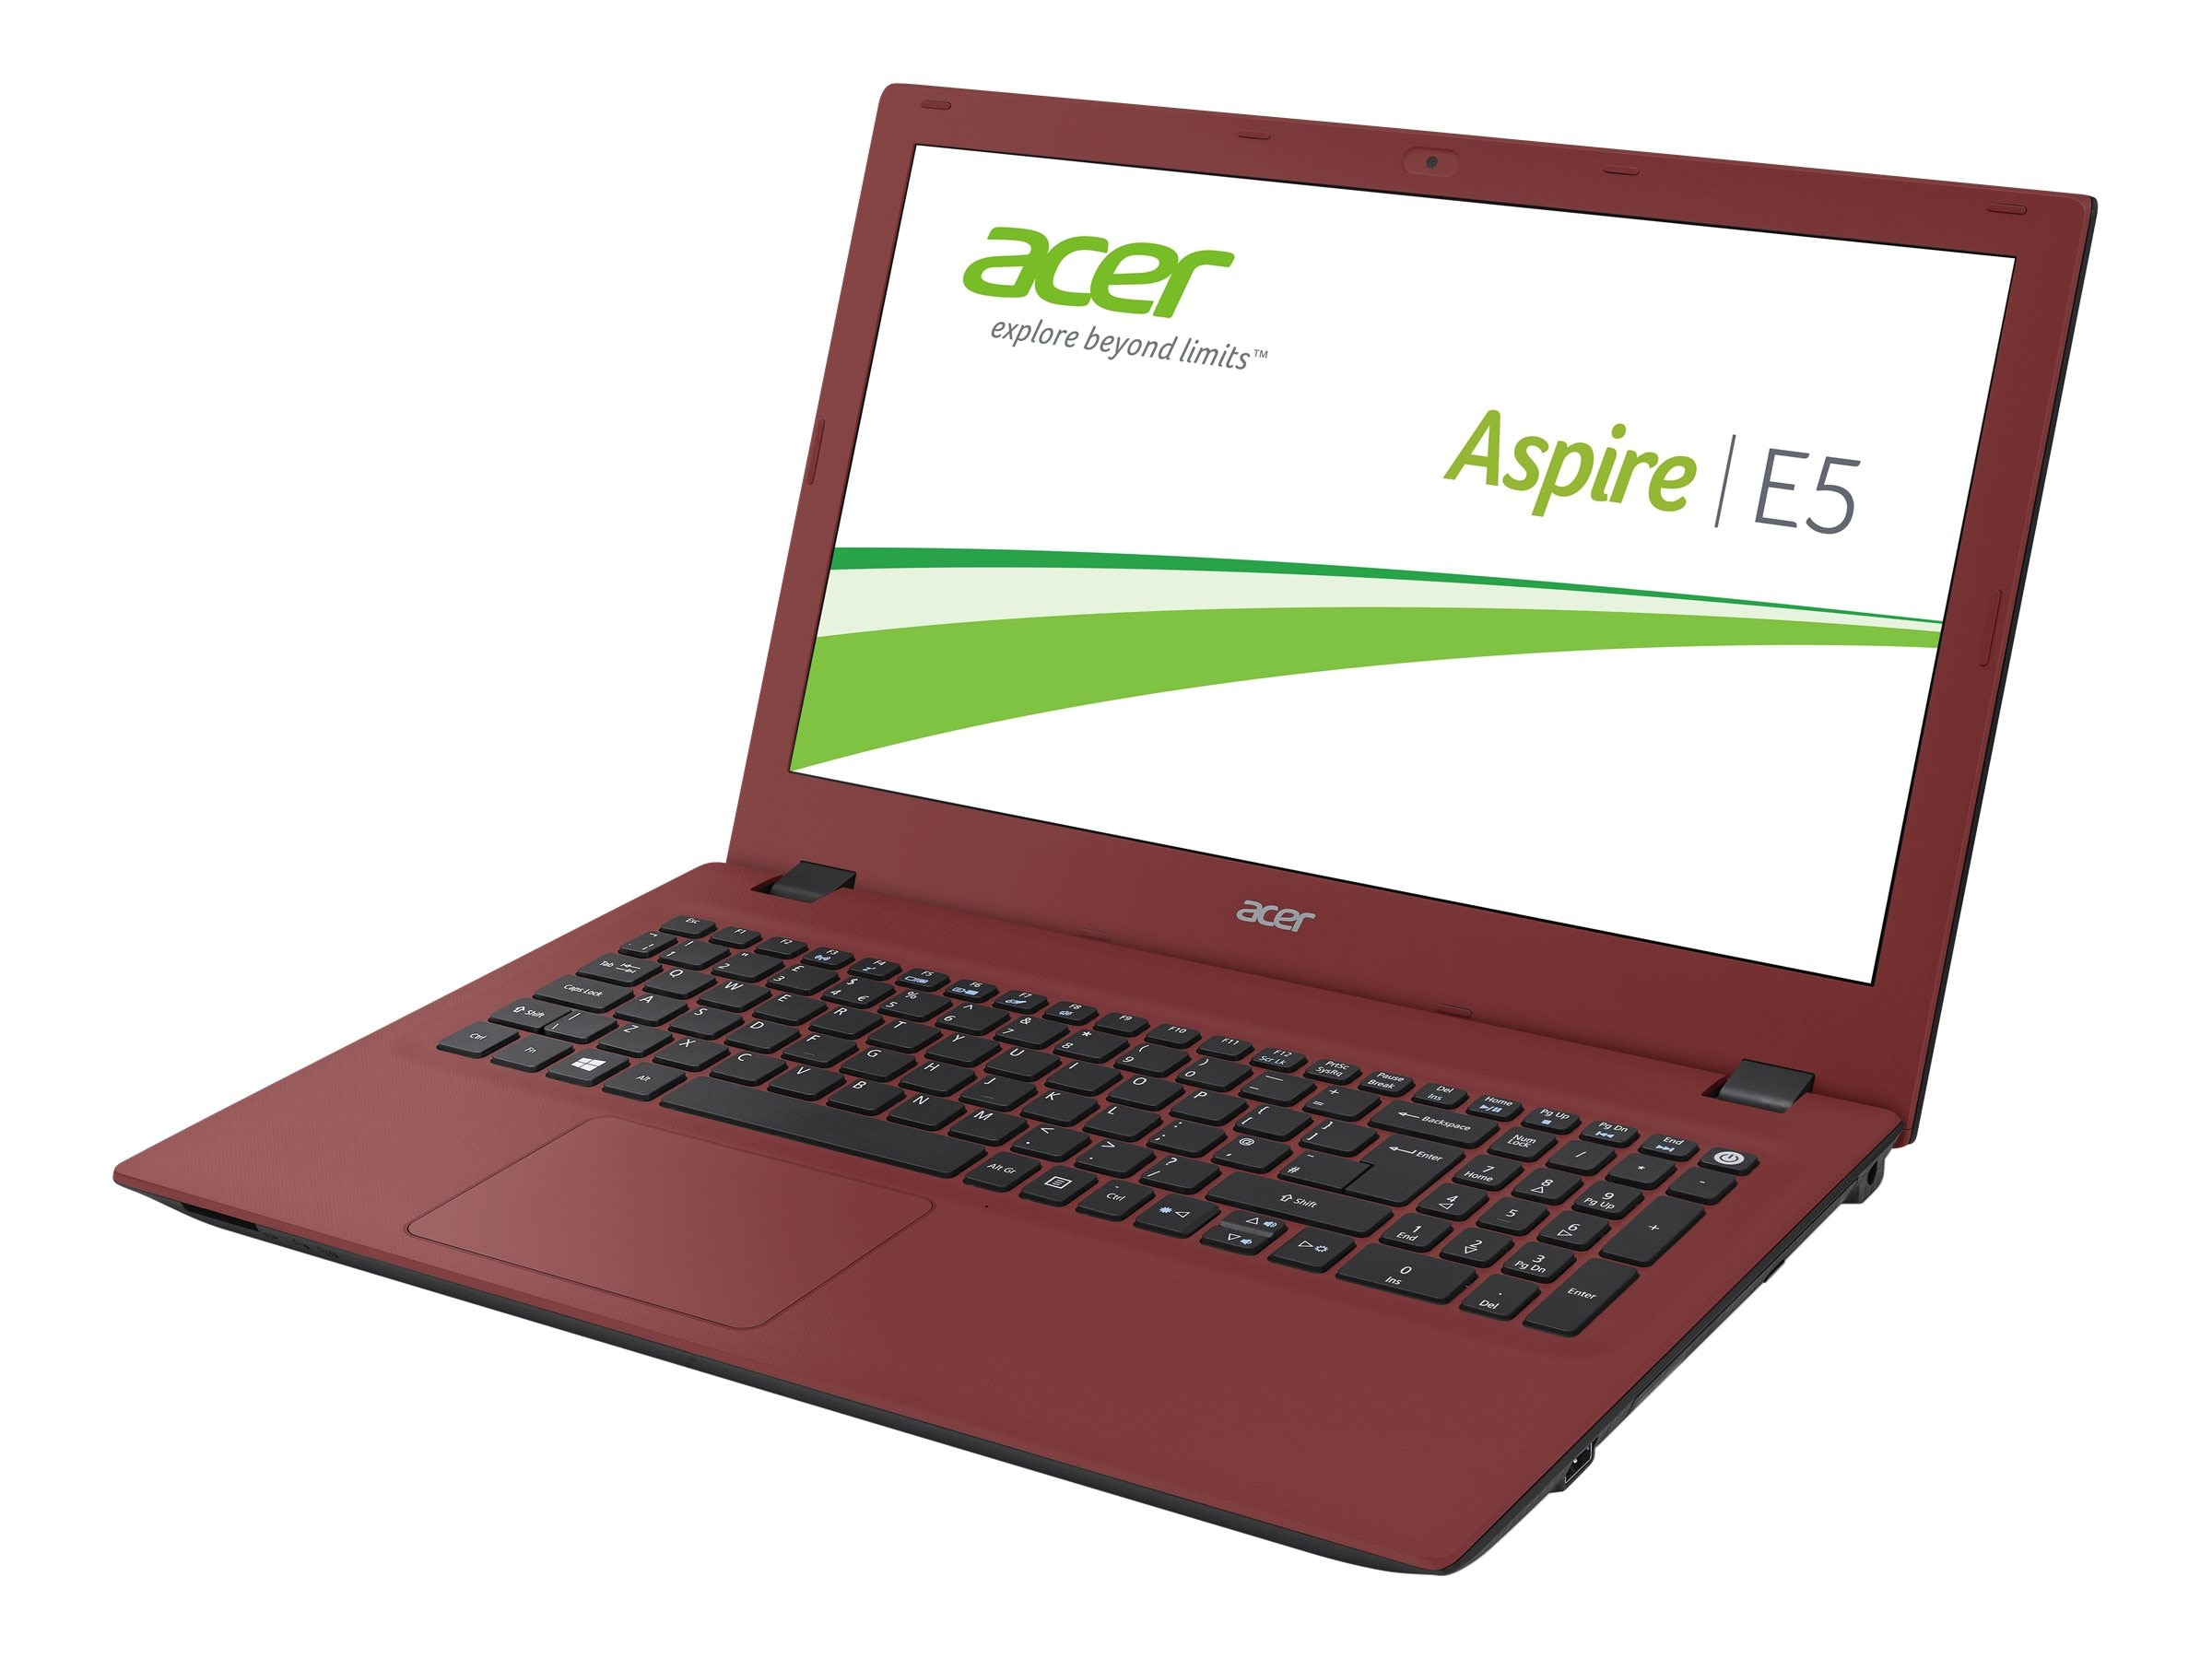 Acer Notebook PC Core i3-5015U 4GB 500GB 15 W10, NX.MVJAA.002, 30736043, Notebooks